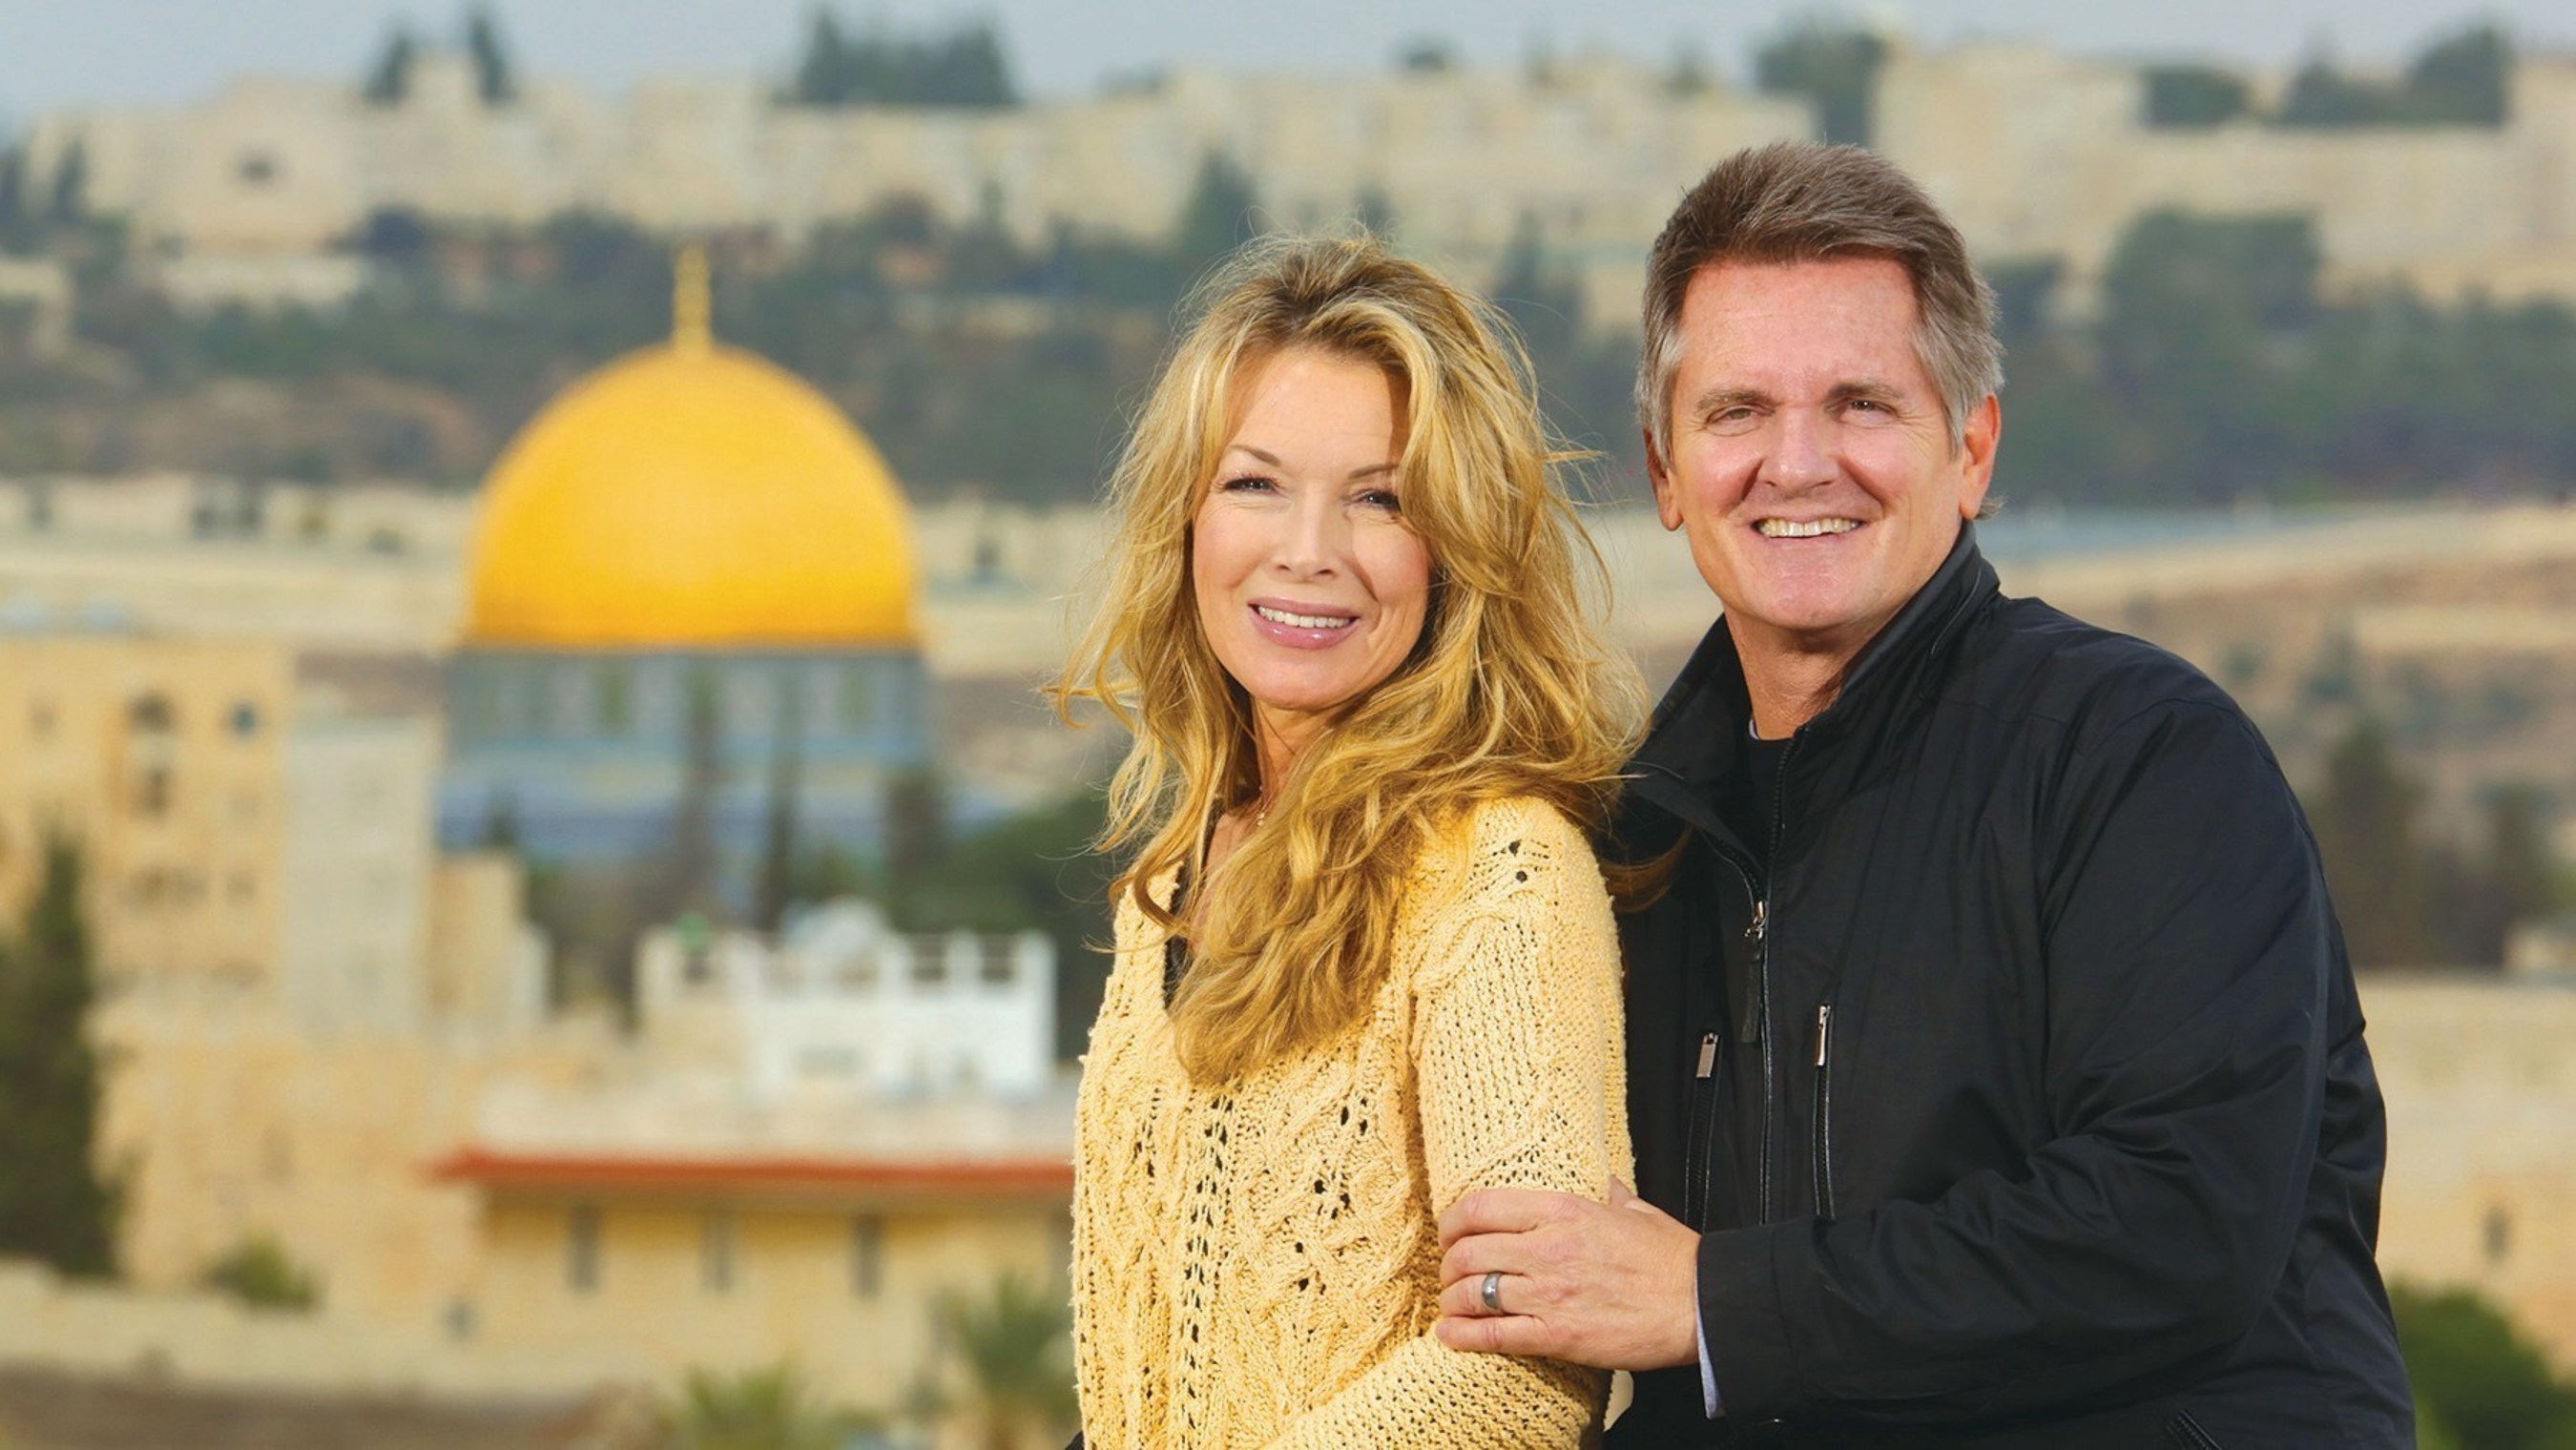 Global Religious Network Preparing for Highly Anticipated 'G16' Israel Tour